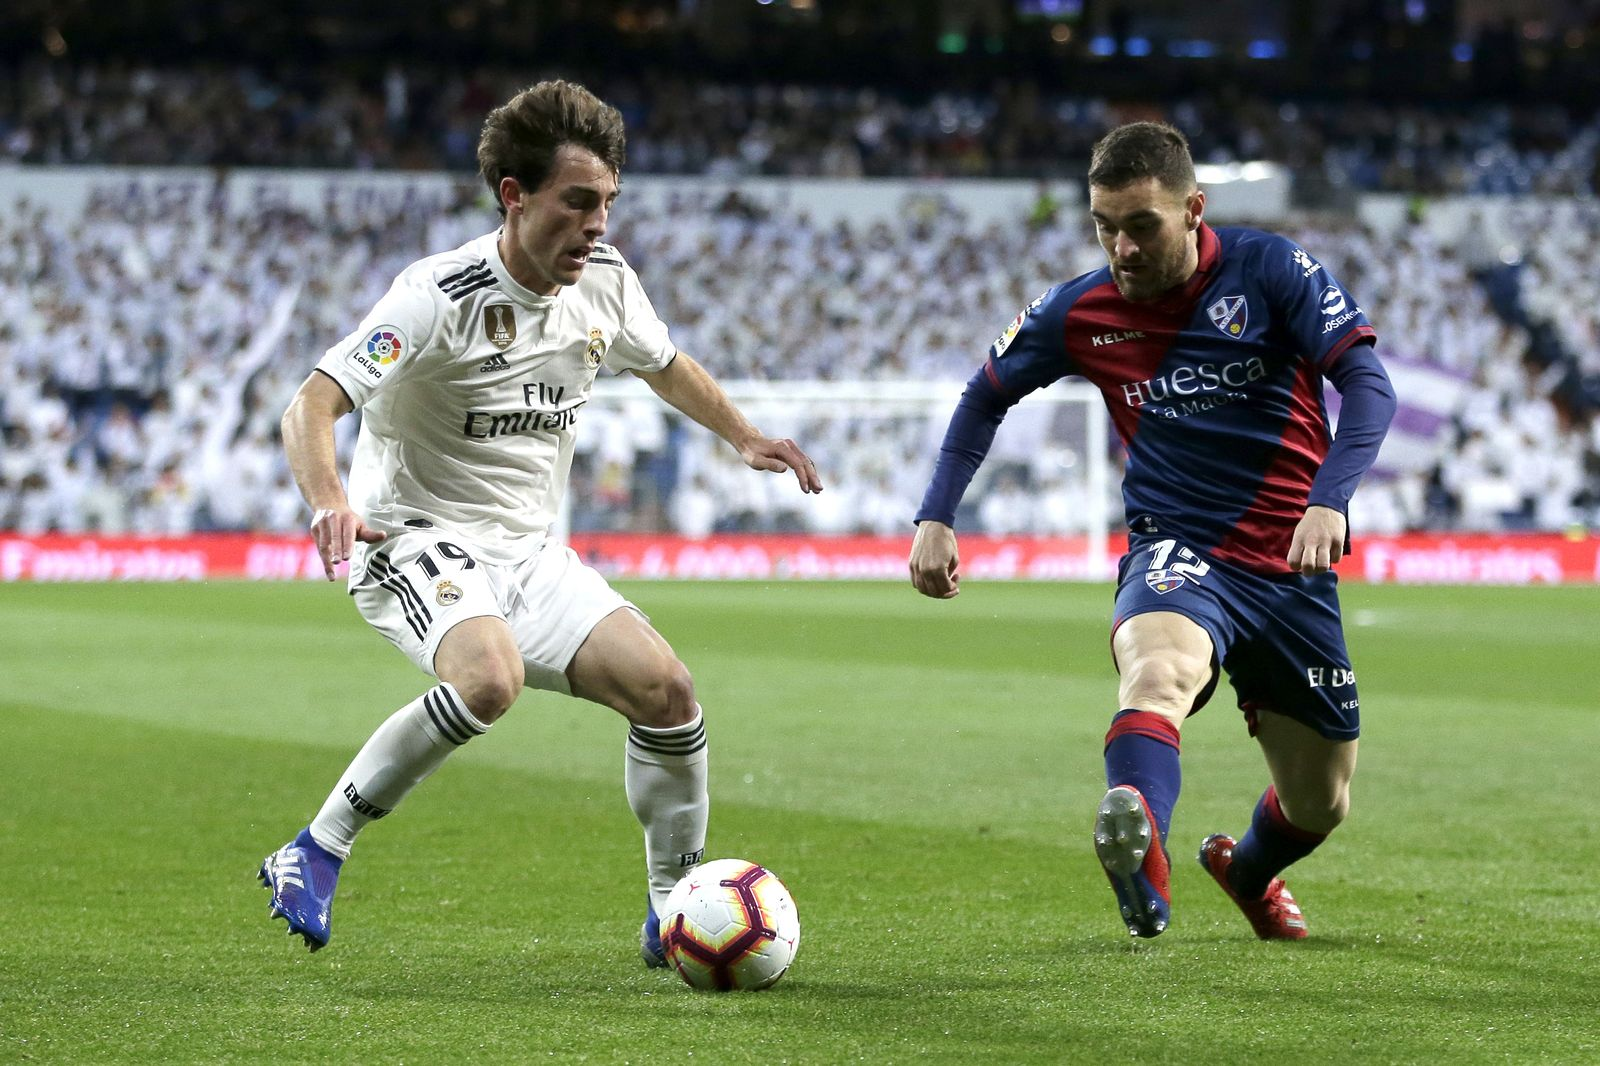 Real Madrid CF v SD Huesca - La Liga